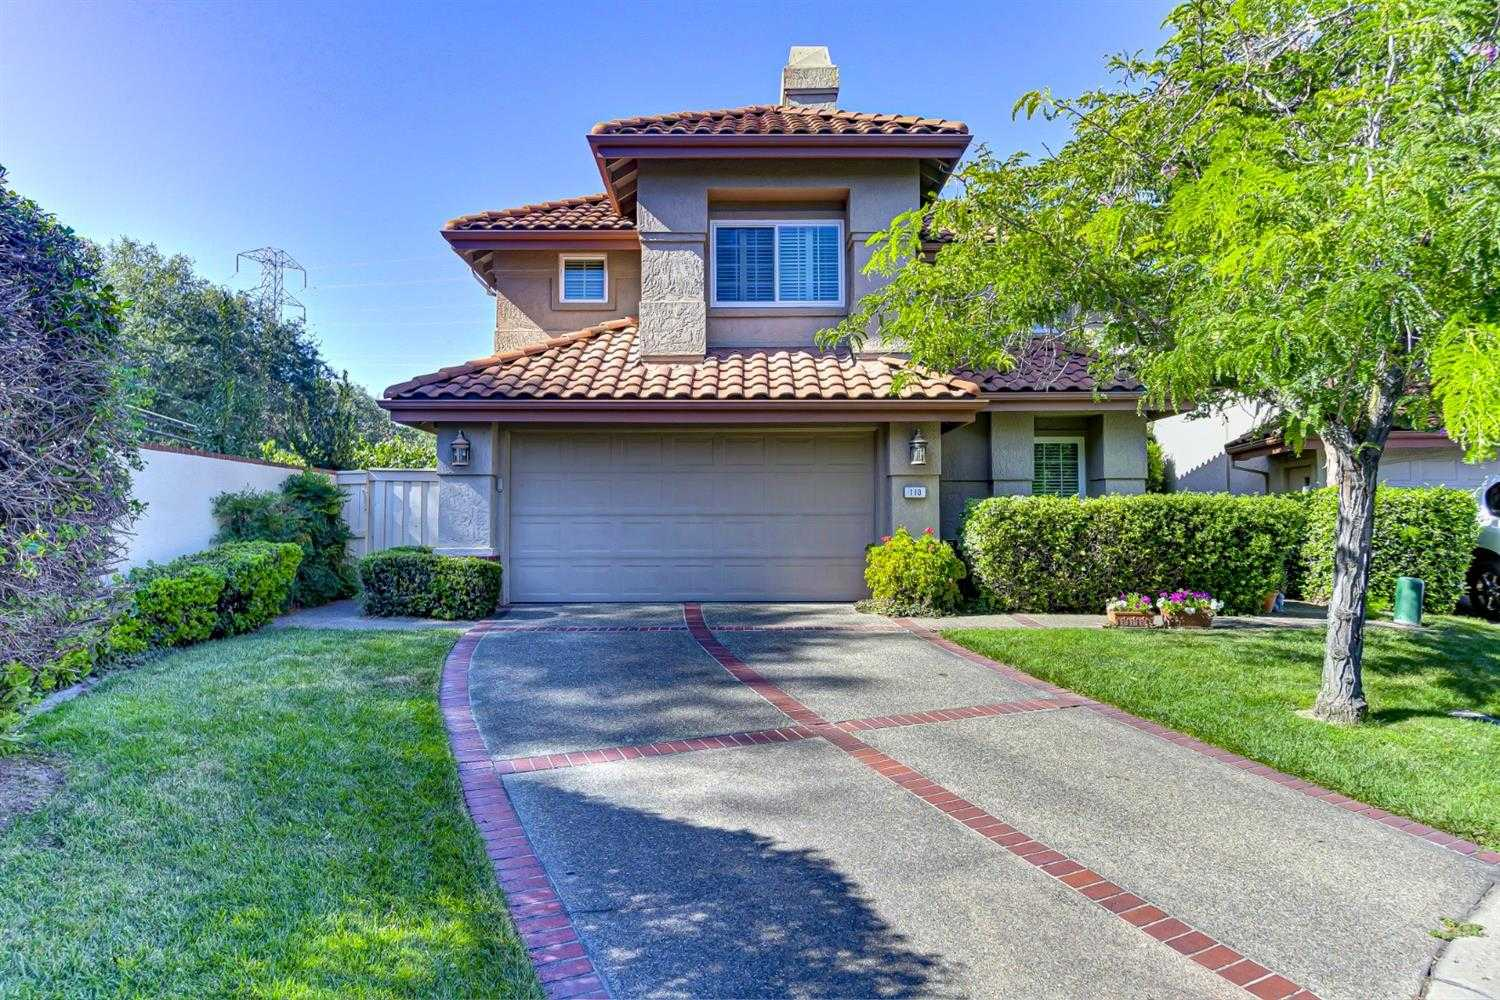 $499,000 - 3Br/3Ba -  for Sale in Cascades, Folsom